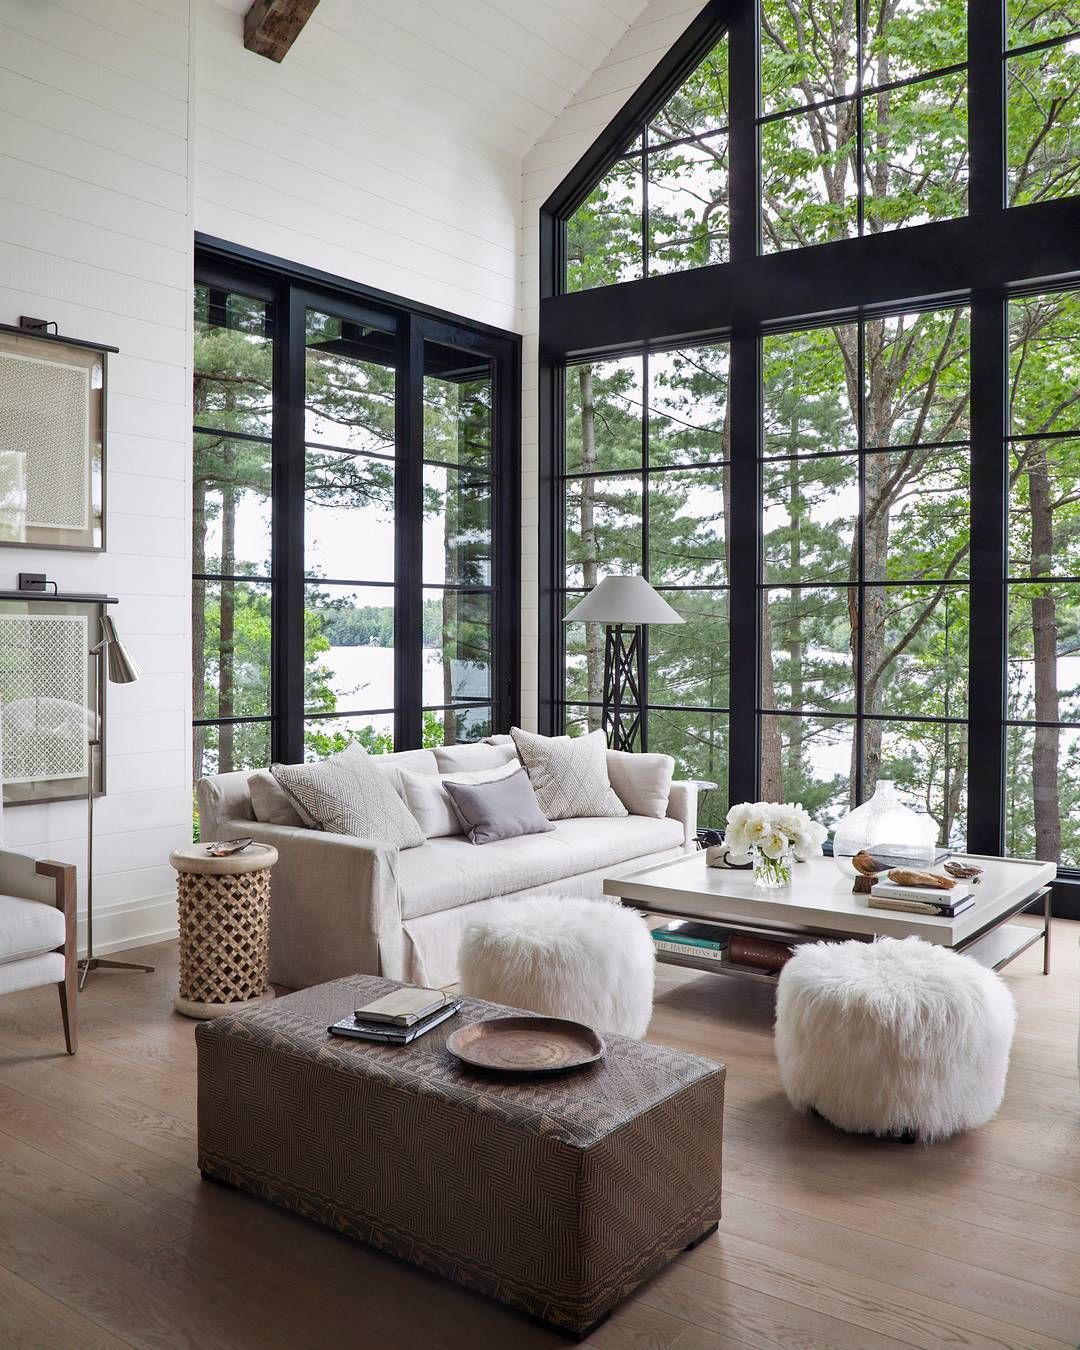 25 Stunning Home Interior Designs Ideas: Pin By Emily Spiekhout On Home : Windows & Doors In 2019